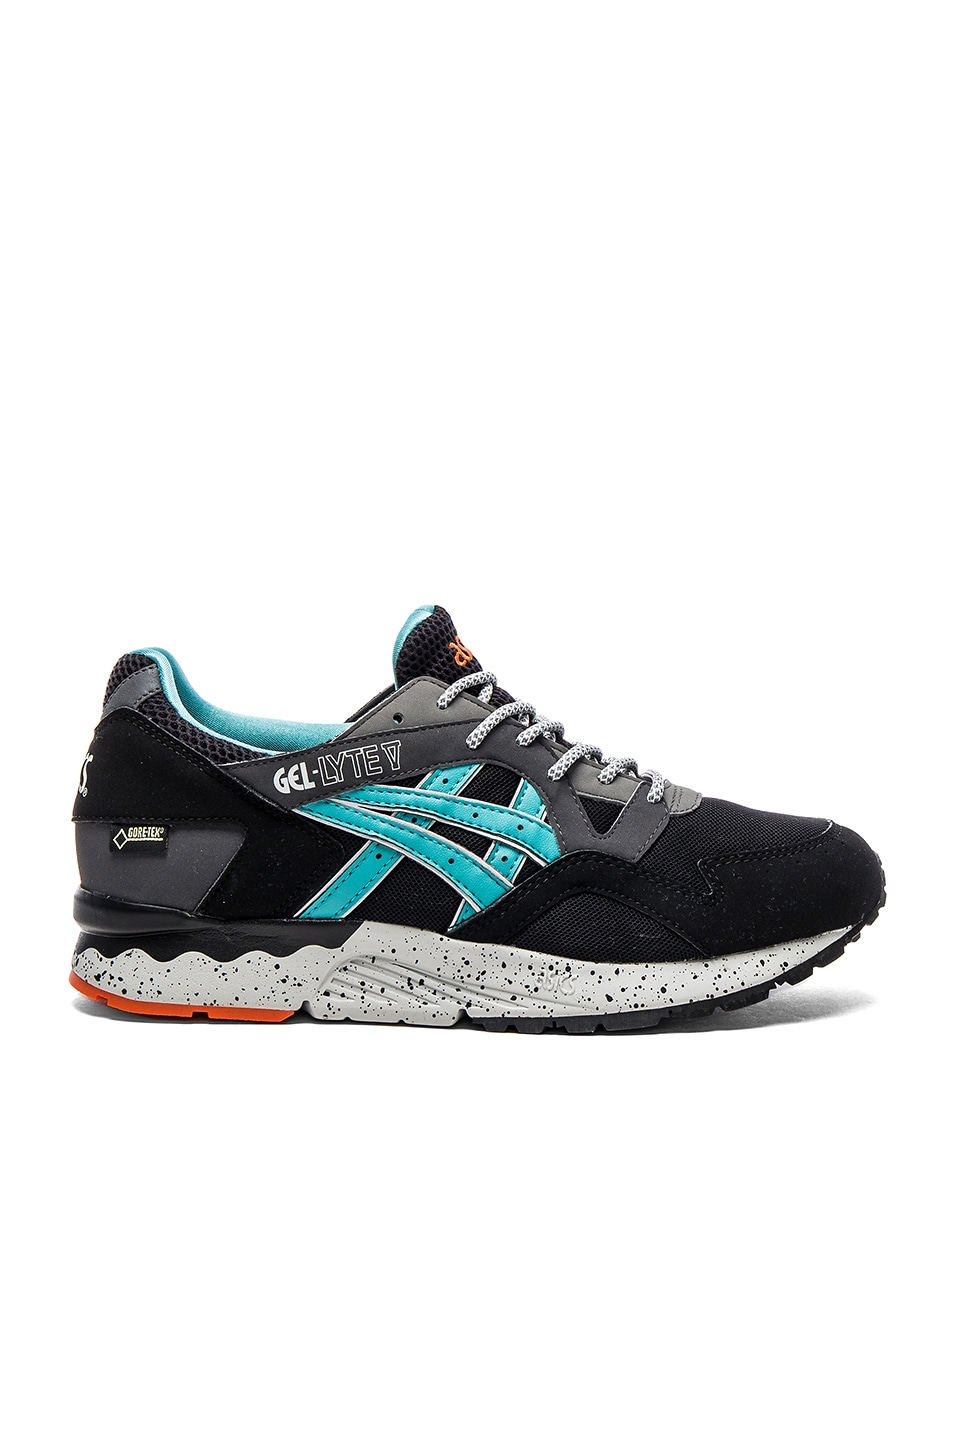 Asics Platinum Gel Lyte V in Black Latigo Bay